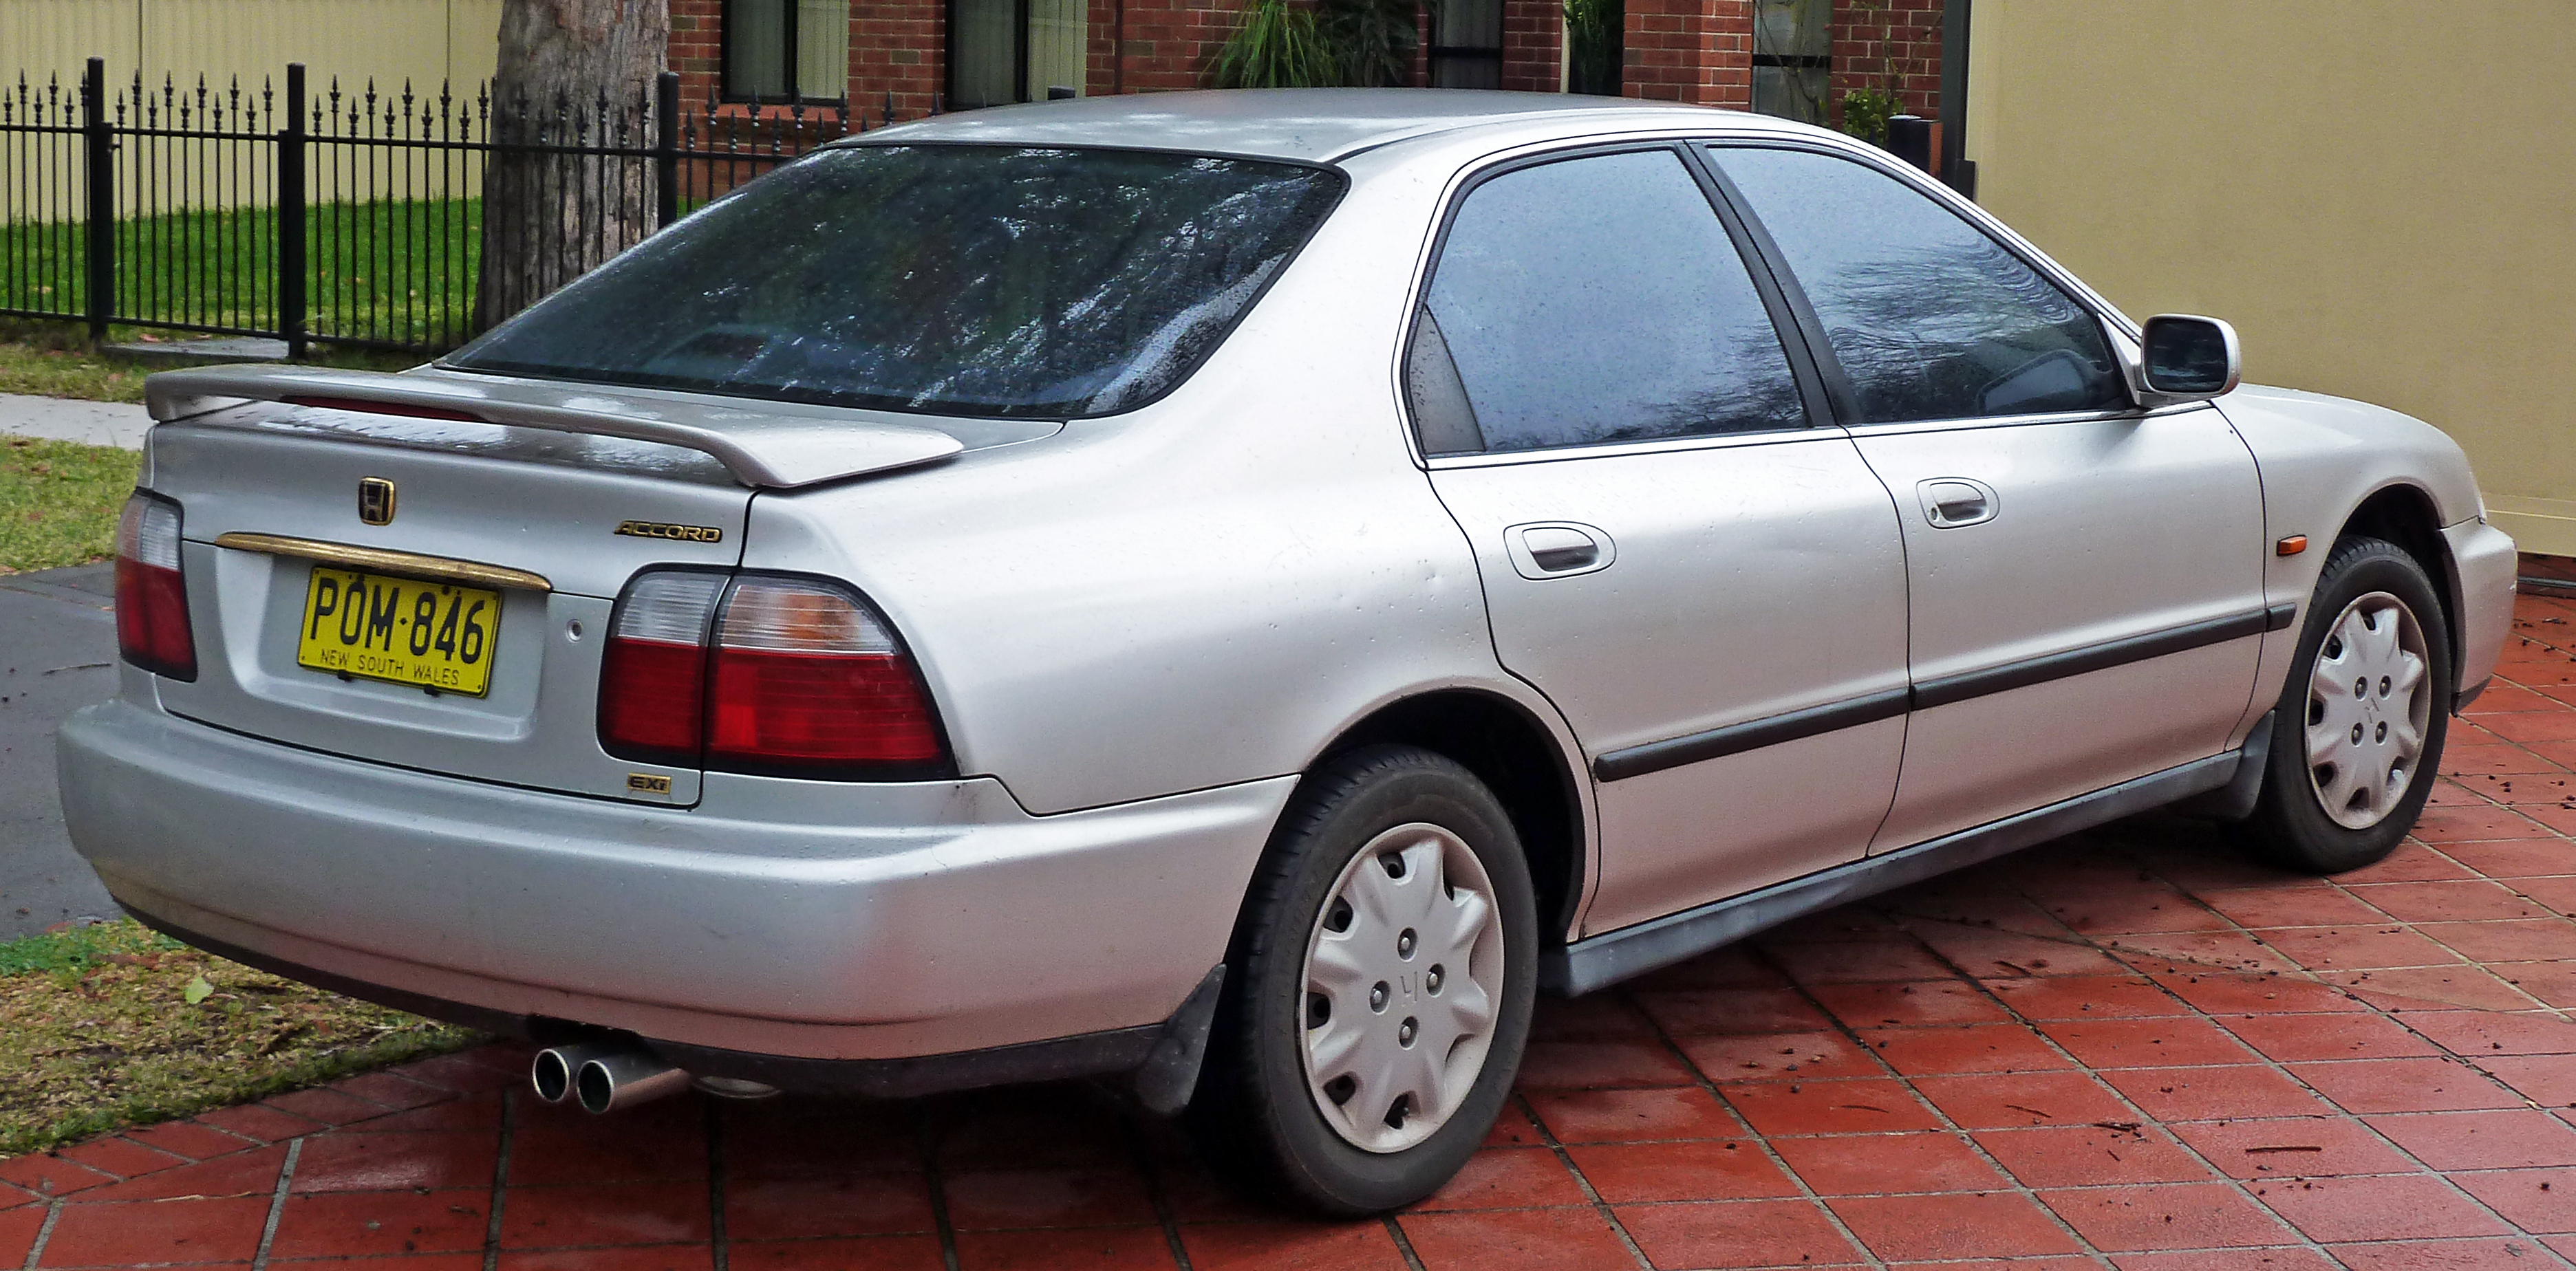 1997 Honda Accord #12 Honda Accord #12